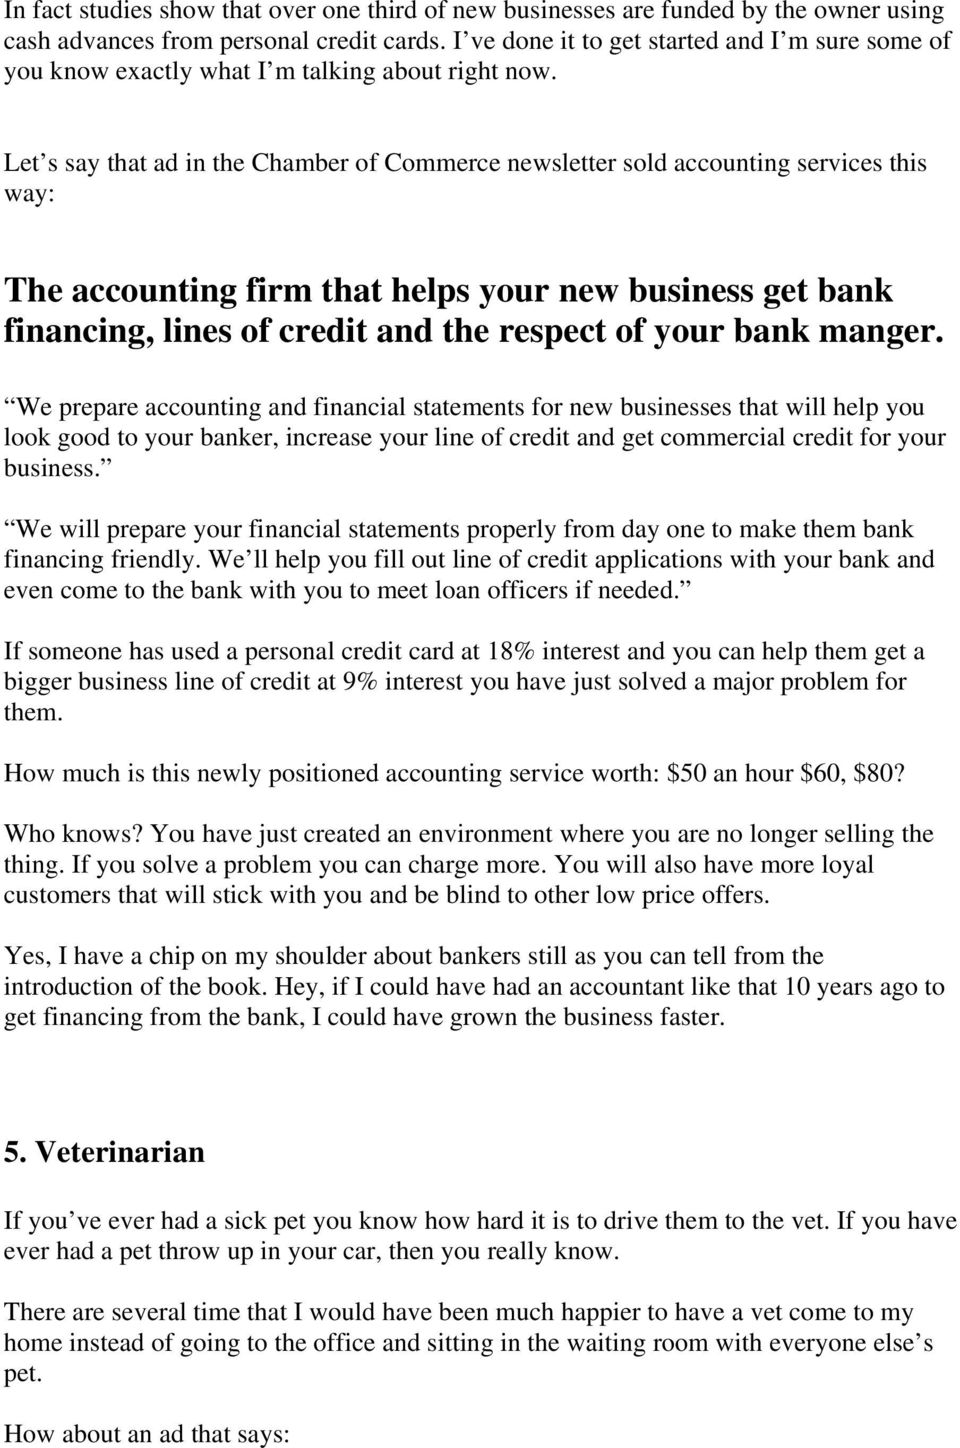 Let s say that ad in the Chamber of Commerce newsletter sold accounting services this way: The accounting firm that helps your new business get bank financing, lines of credit and the respect of your